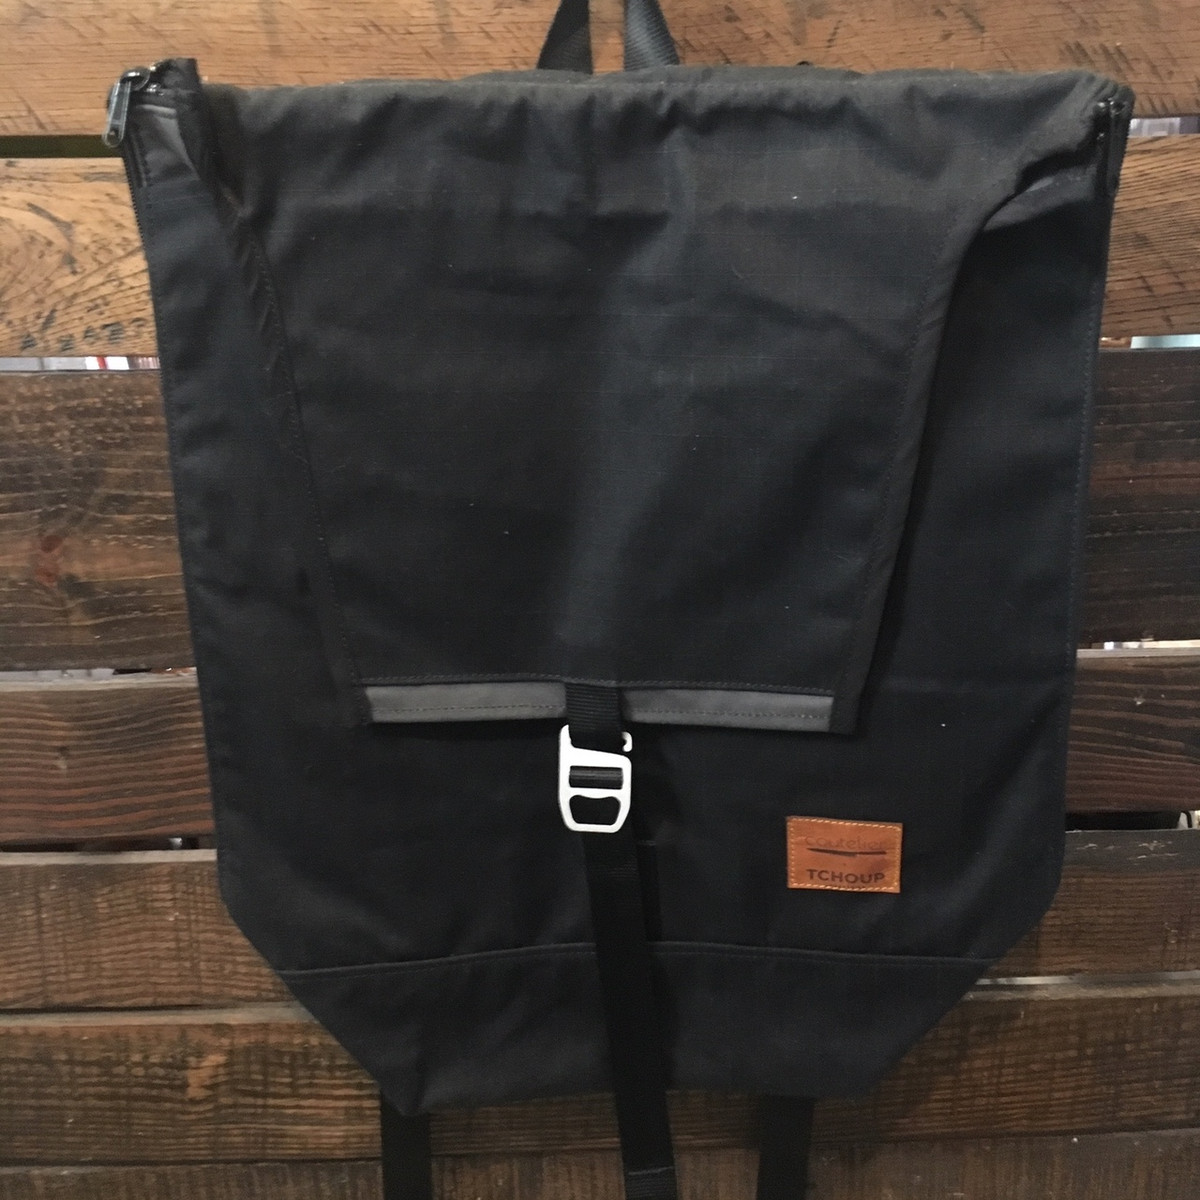 Tchoup Bags - Backpack - Black